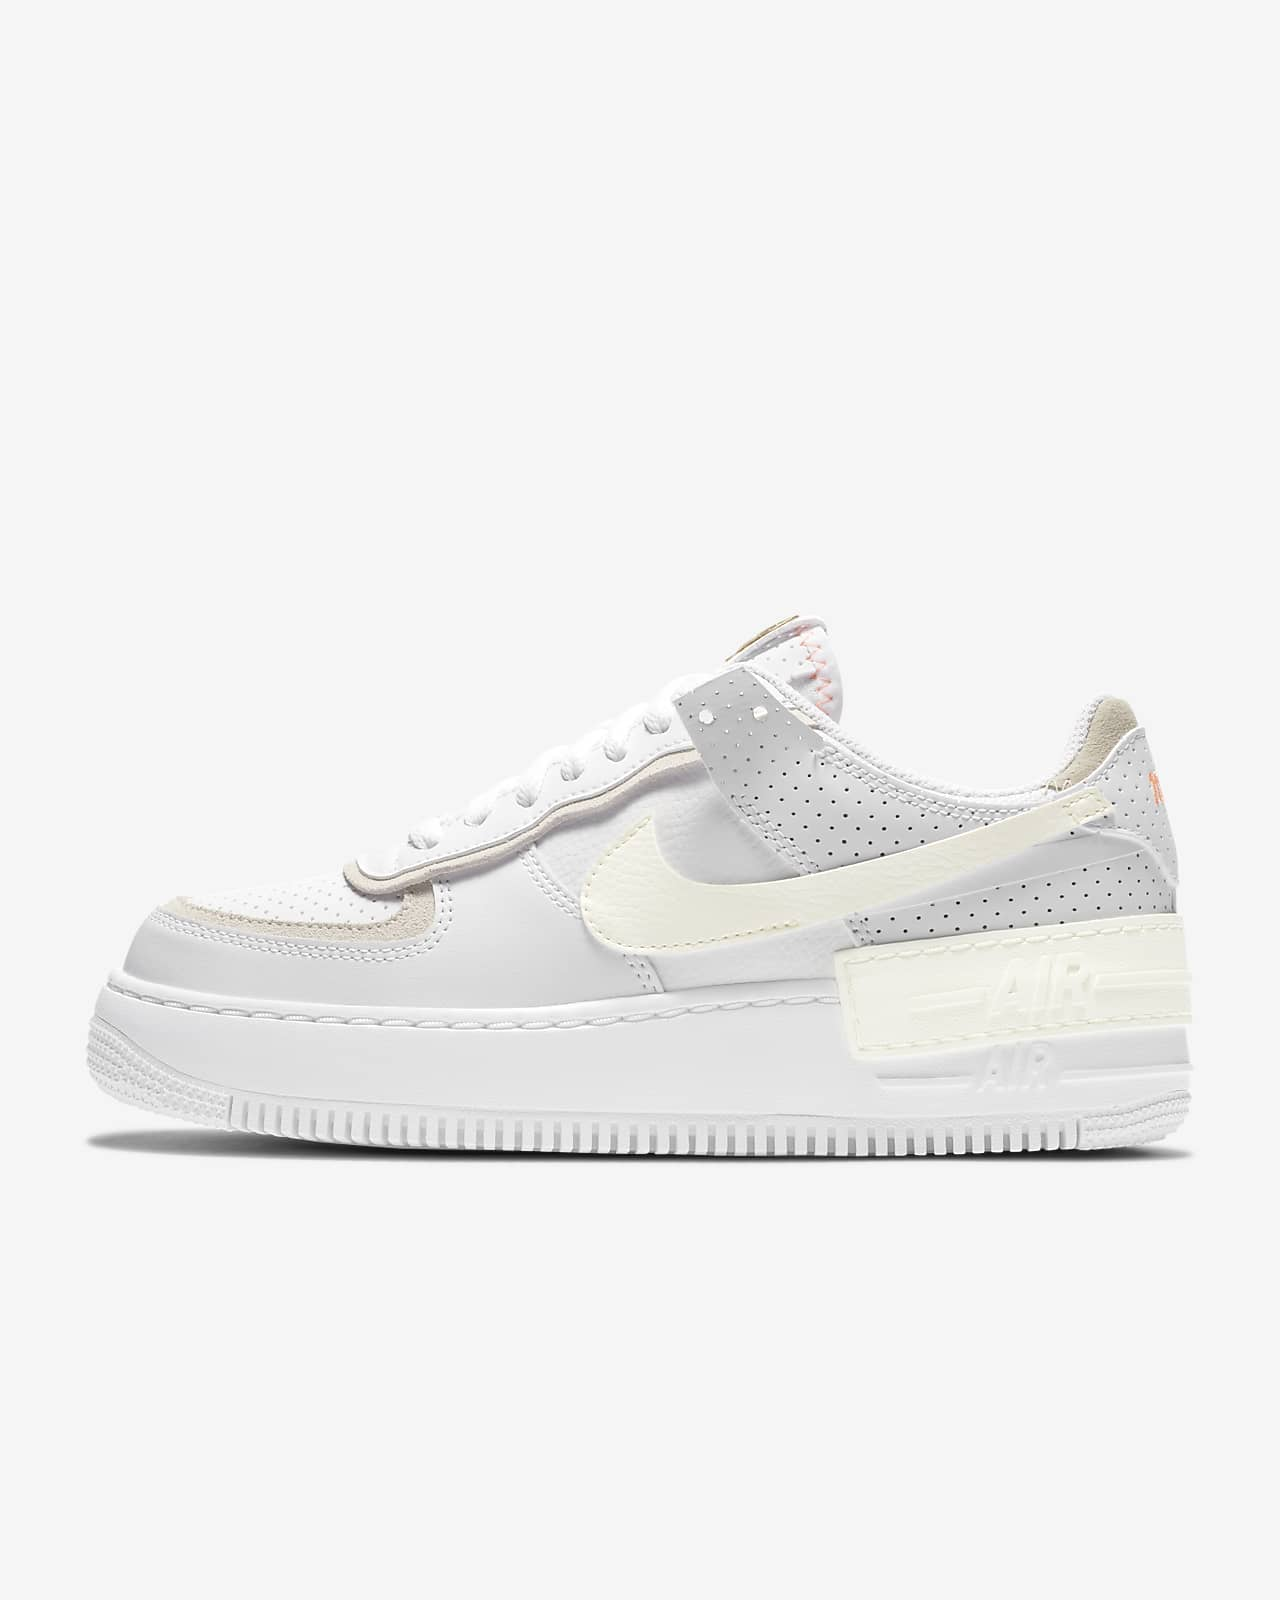 Nike Air Force 1 Shadow Women S Shoe Nike Jp Nike af1 shadow women's shoe. nike air force 1 shadow women s shoe